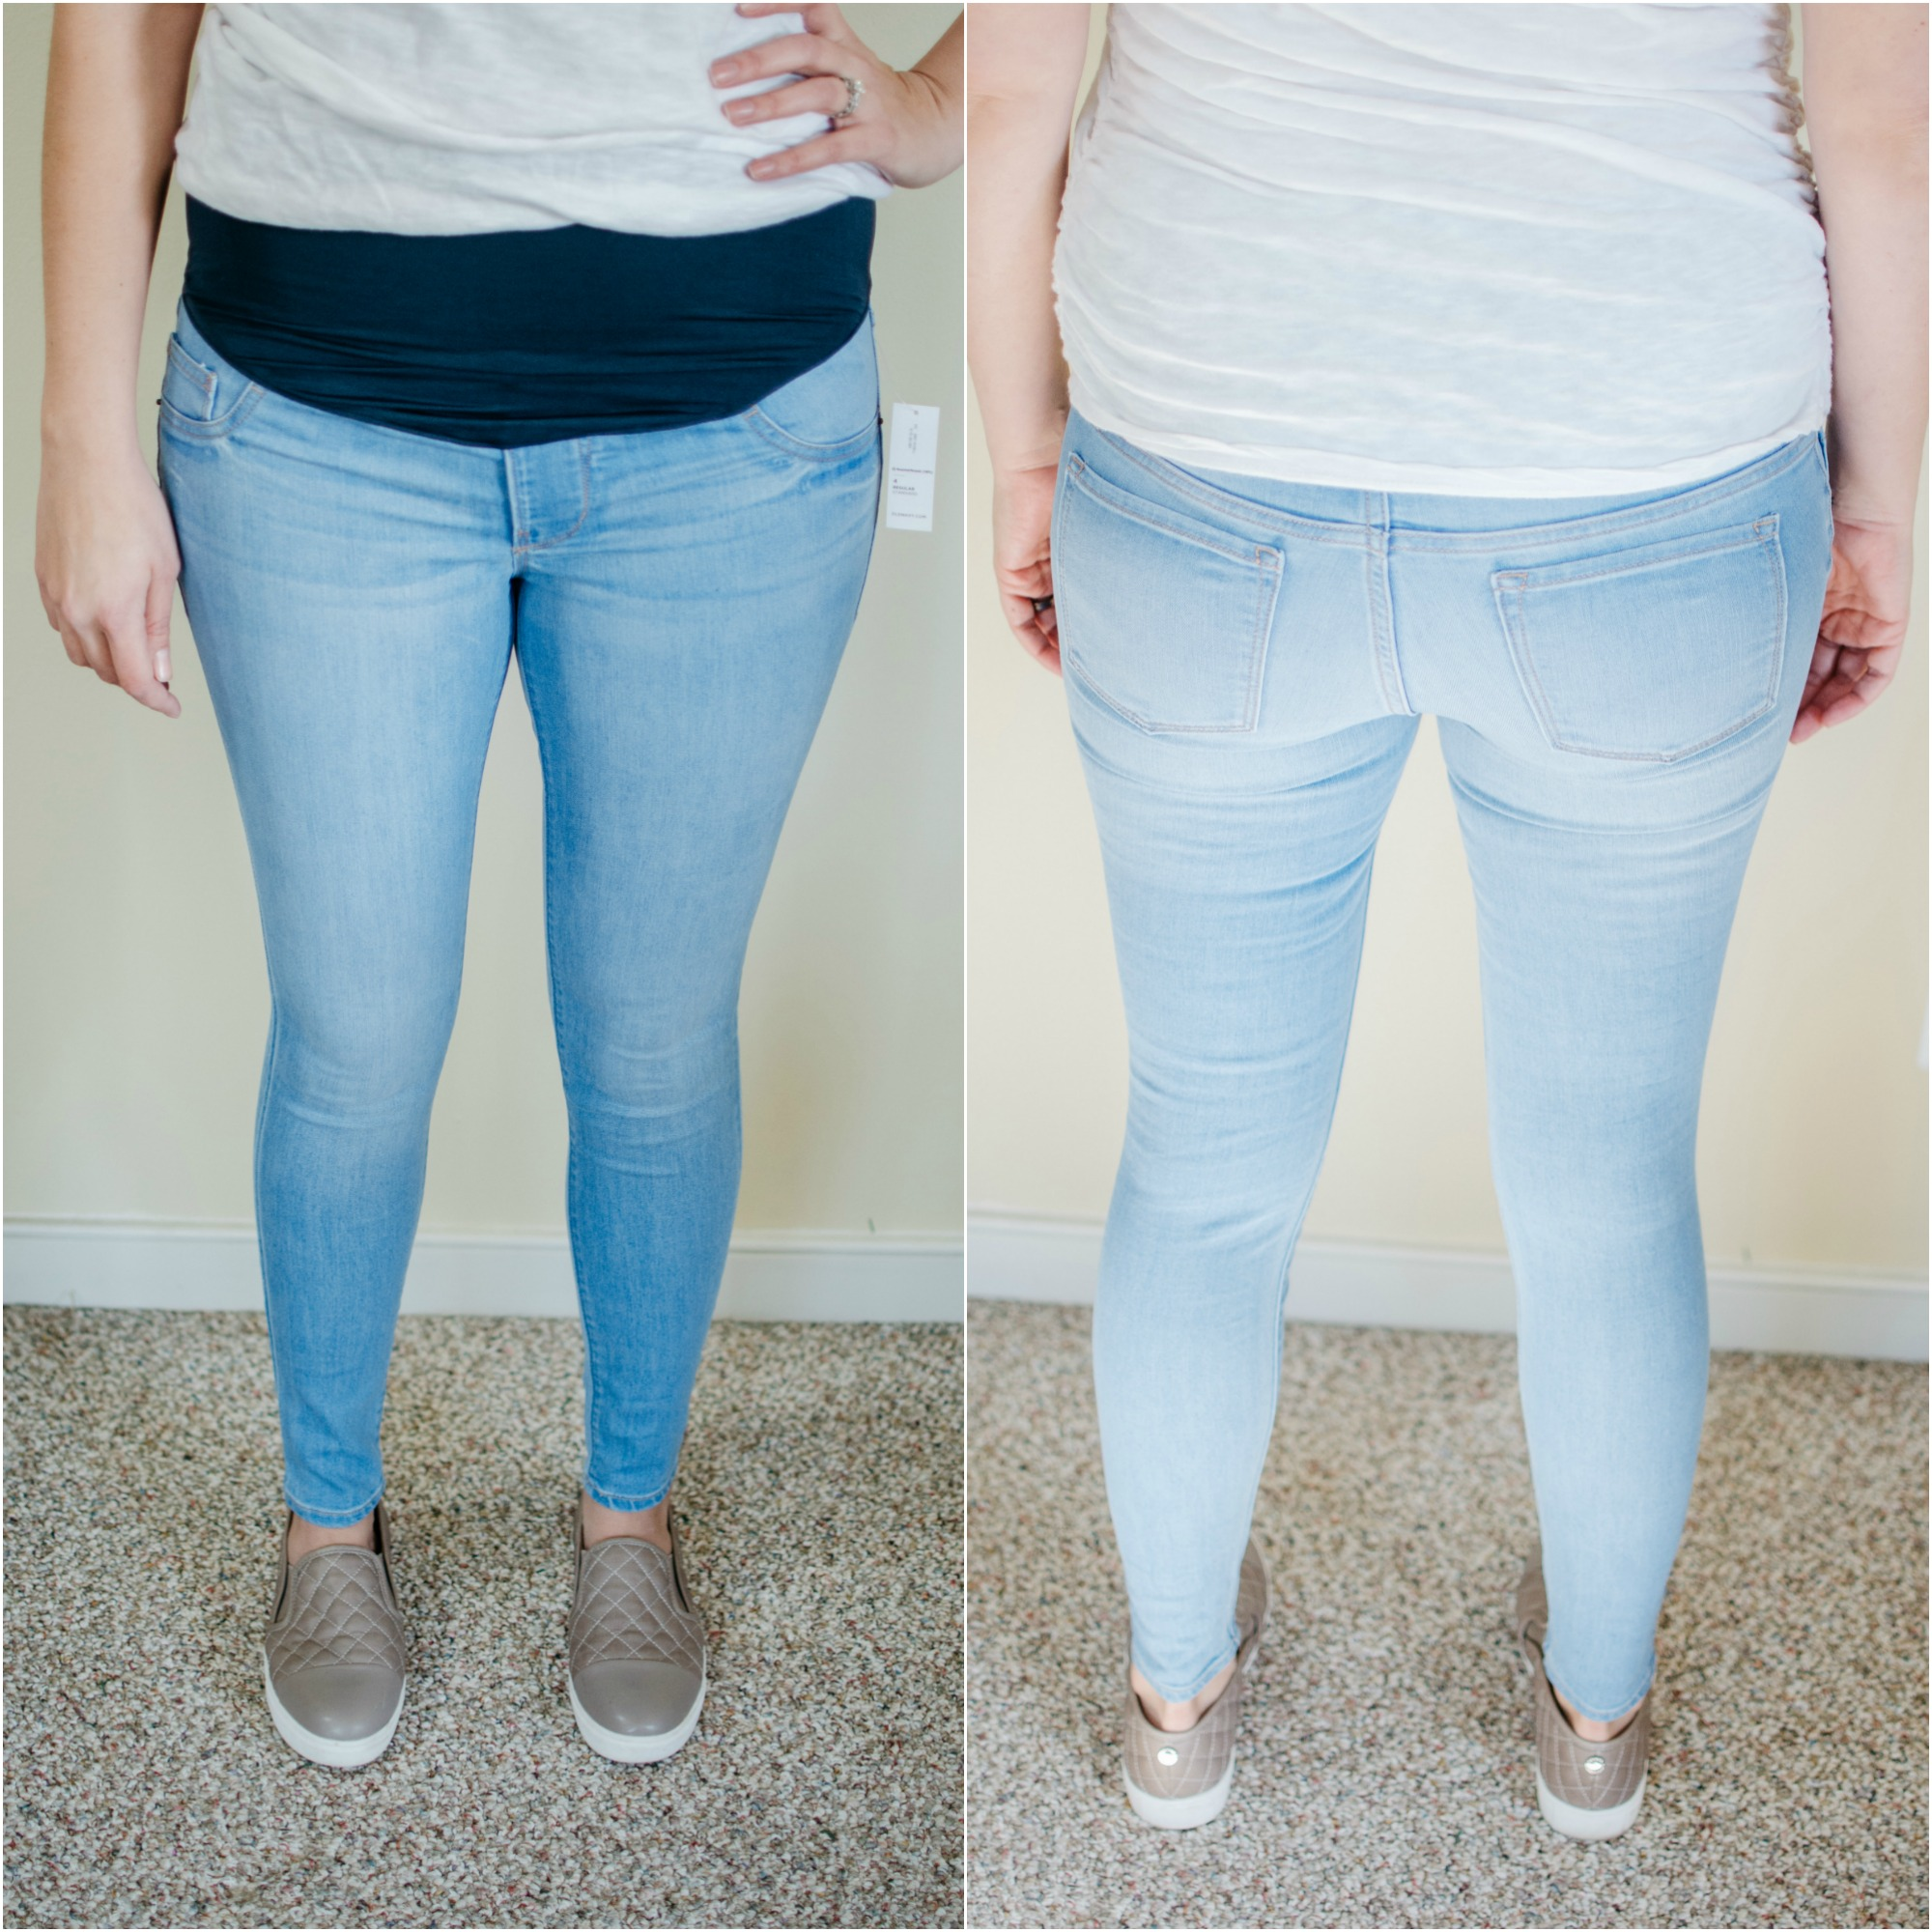 99d51fa0072b3 The fit on these were very similar to the previous pair. The were light and  super-stretchy. Another perfect option for leggings or jeggings lover!